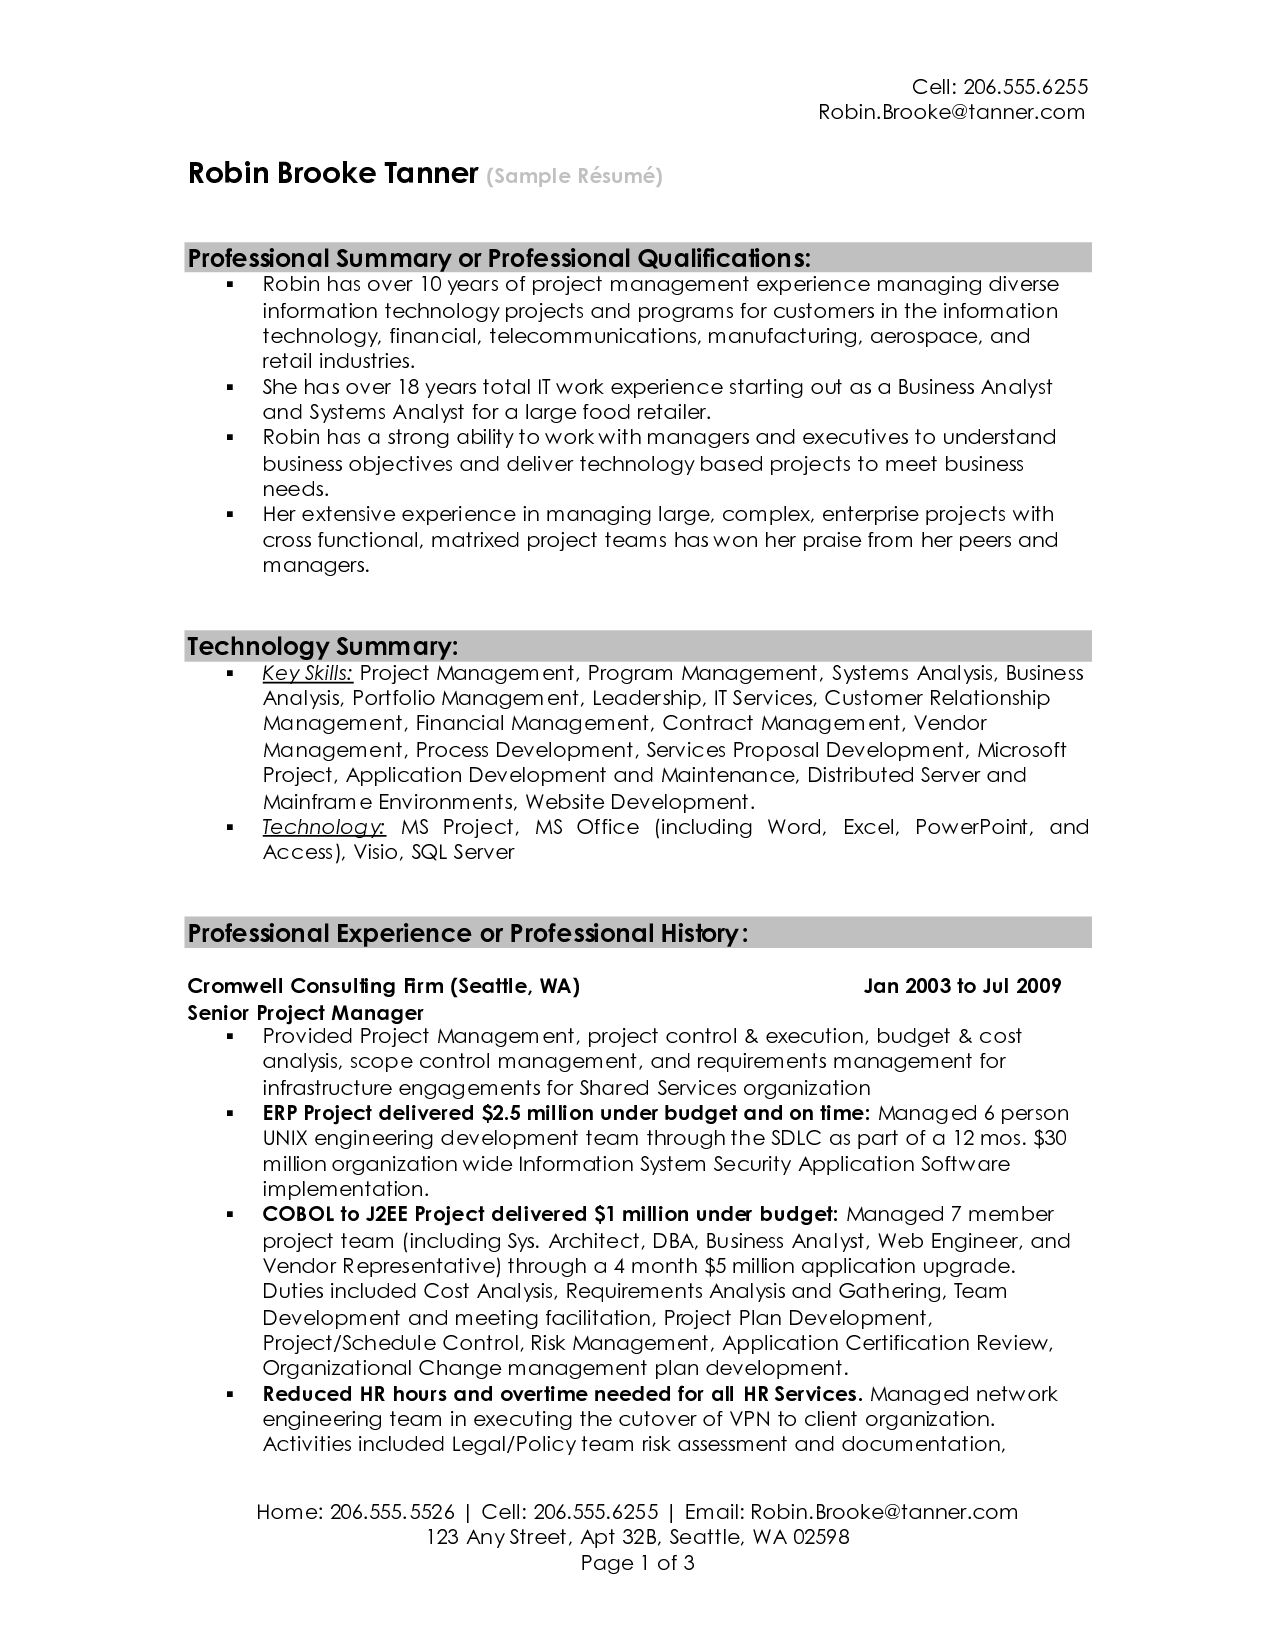 Professional Summary Resume New Professional Summary Resume Examples Professional Resume Summary Decorating Inspiration